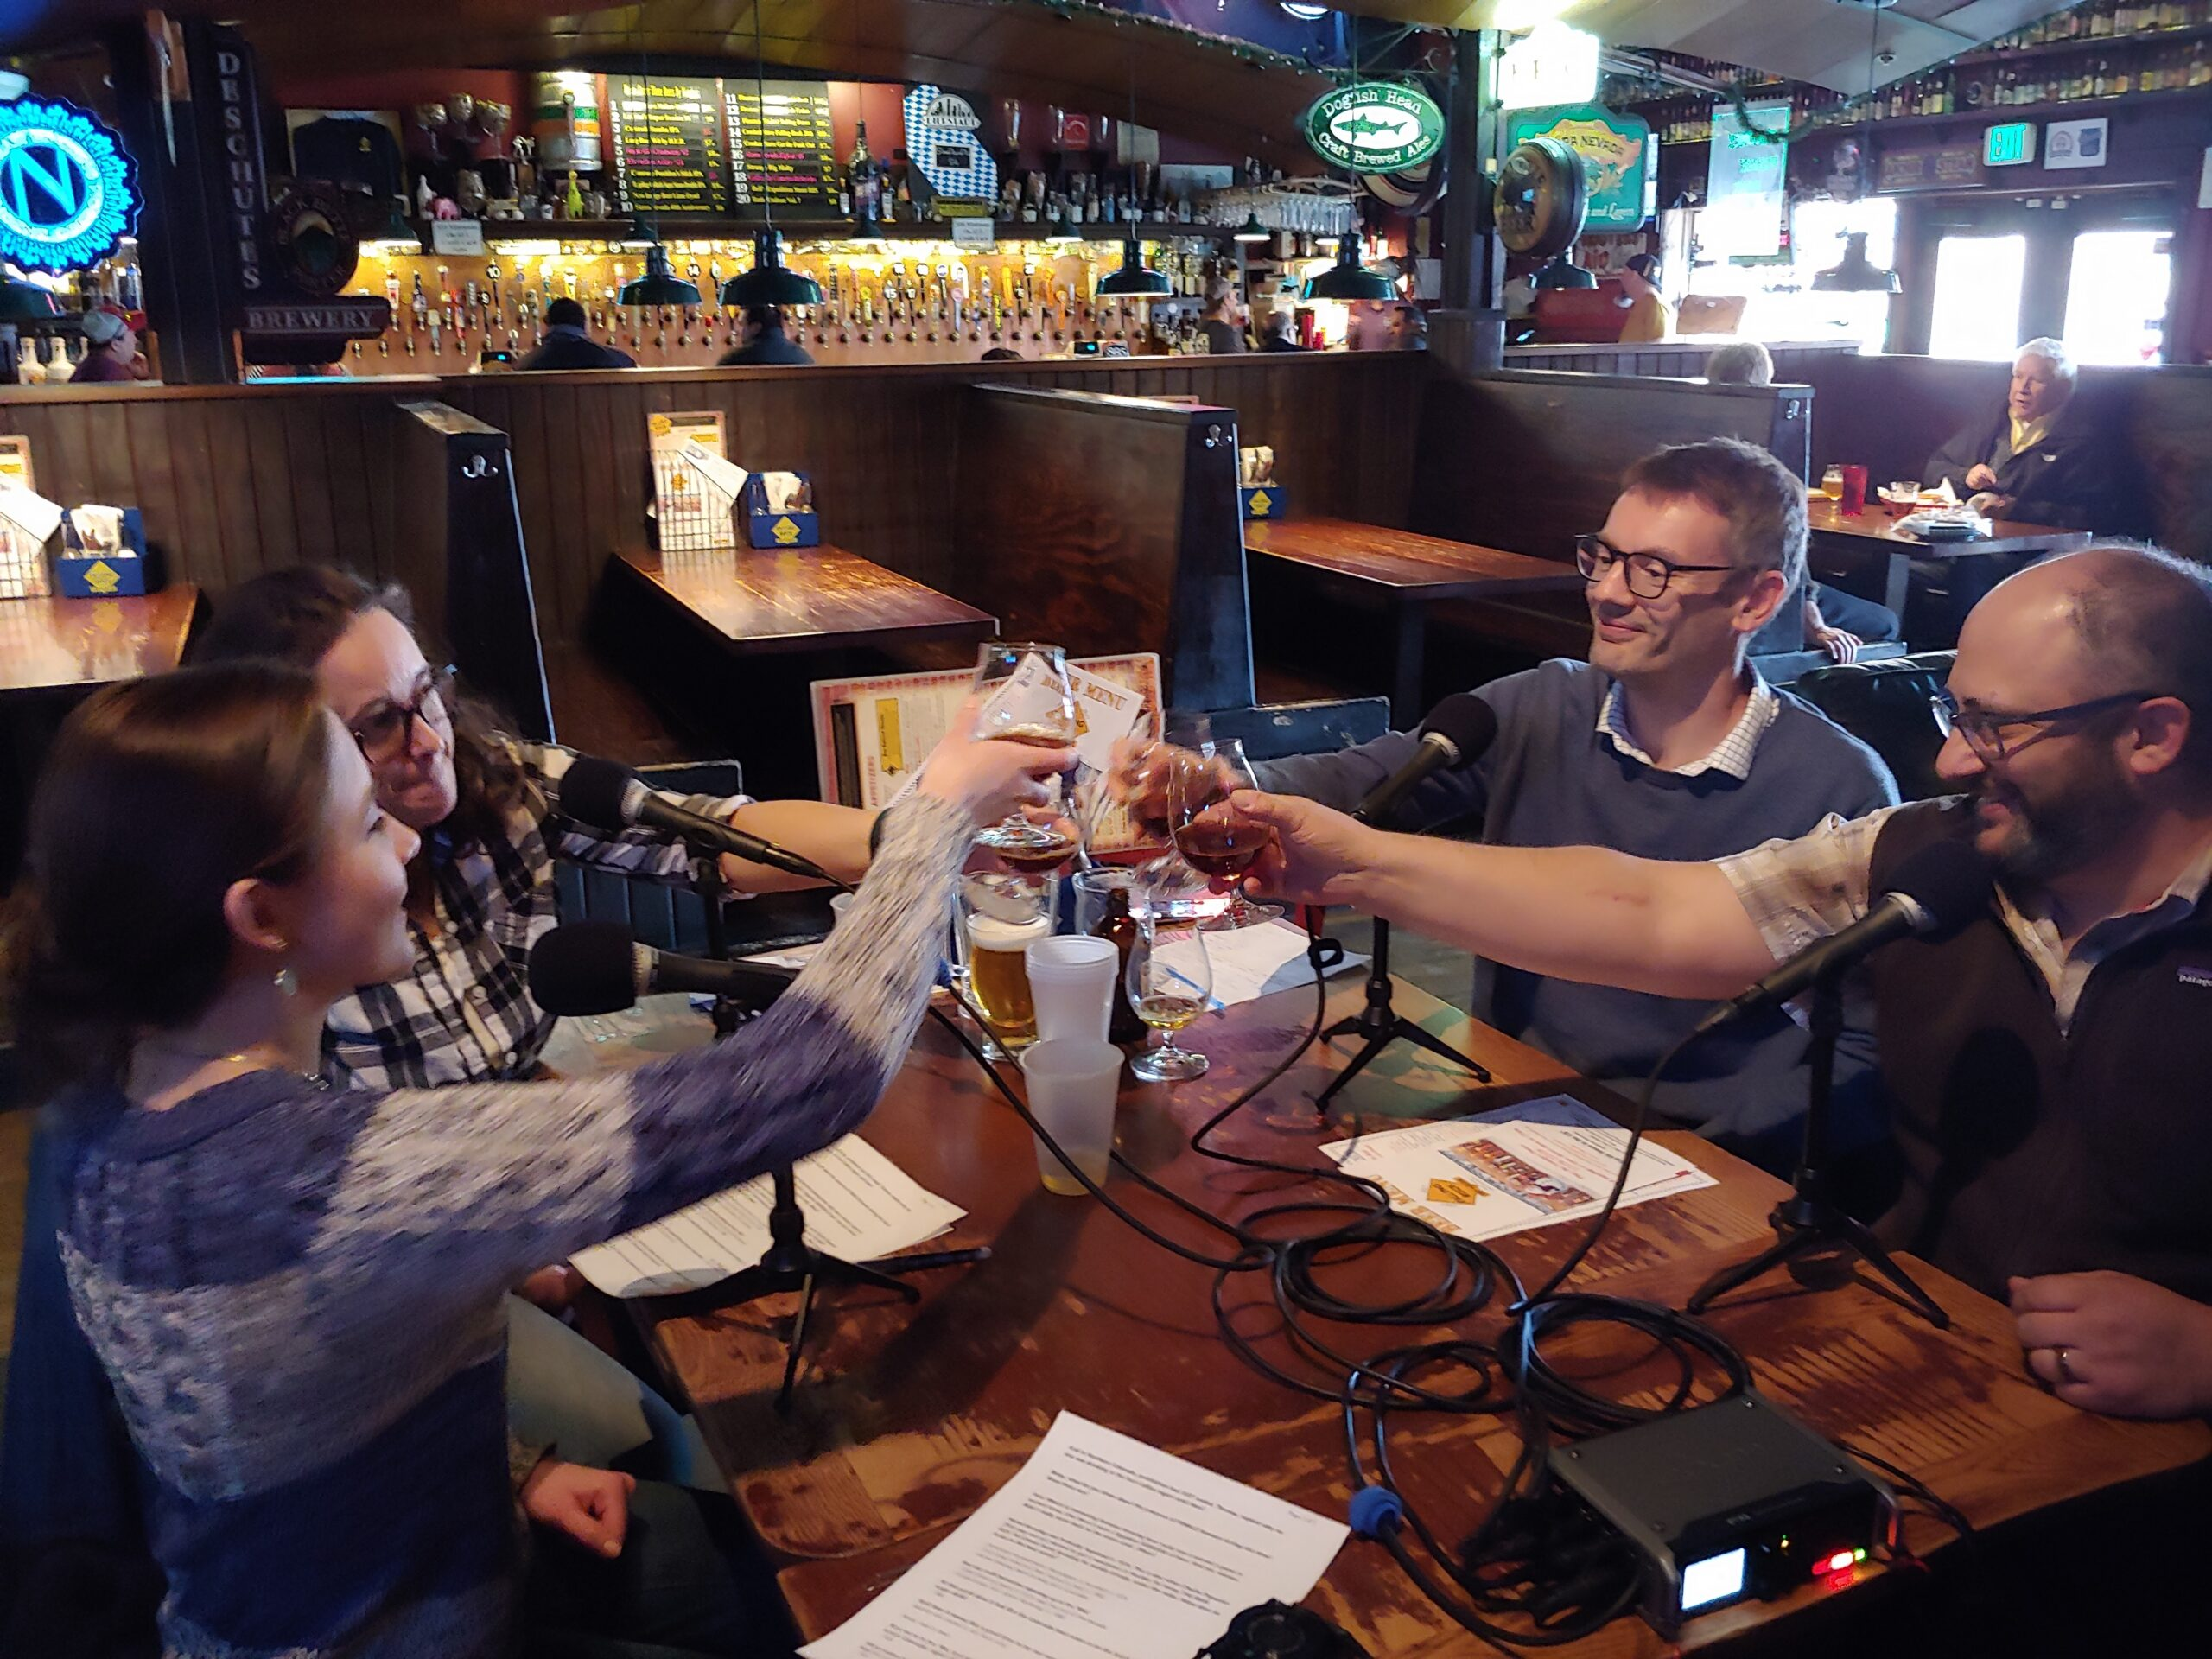 Host Avery Lill spoke with Betsy Lay of Lady Justice Brewing, former CSU historian Thomas Cauvin, and author Jonathan Shikes about Colorado's beer history. They also drank some beer at Falling Rock Tap House in Denver on Feb. 26, 2020.